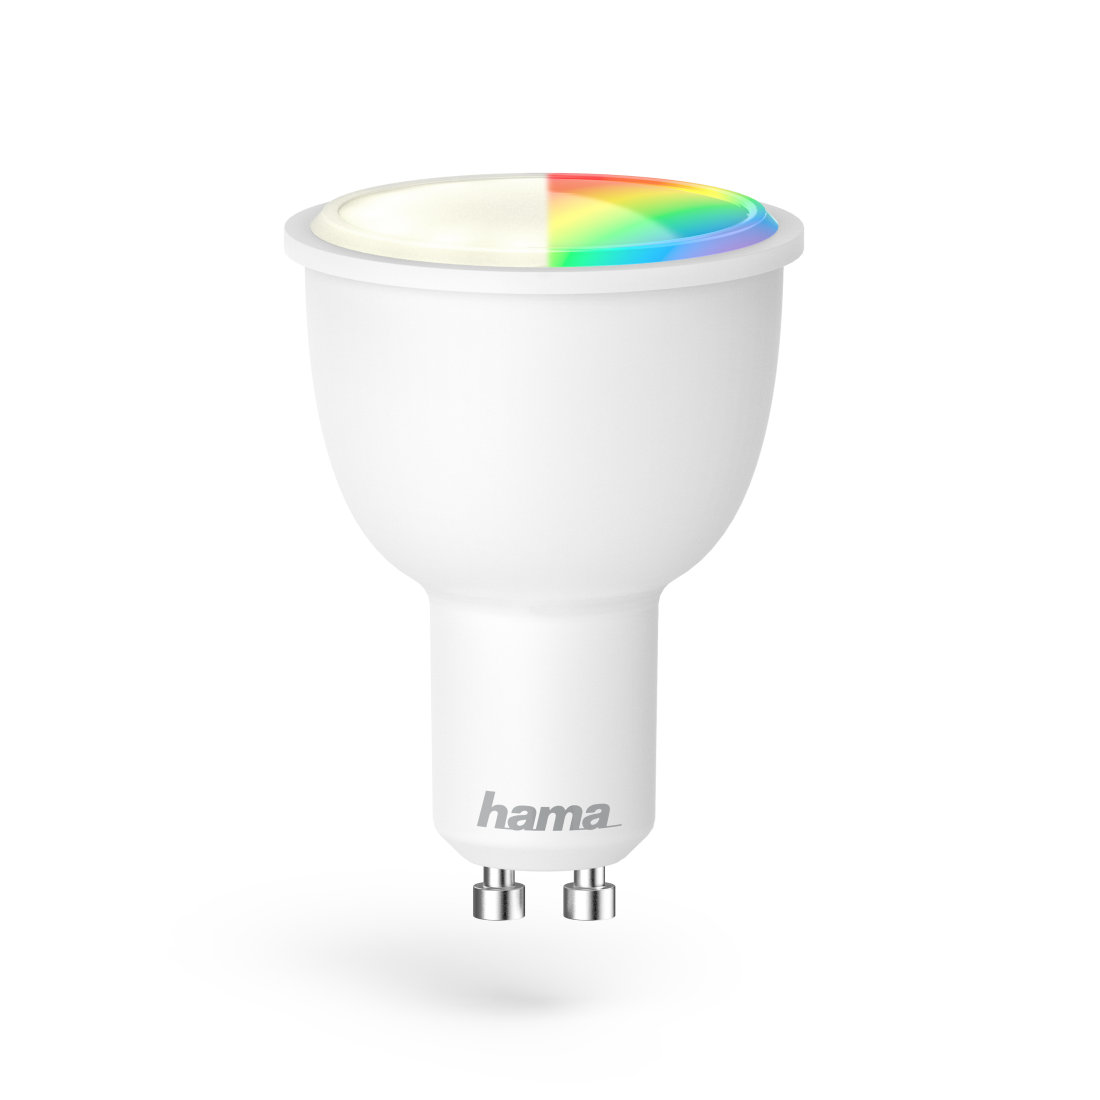 WiFi LED Lampe, GU10, 4,5W, RGB, Dimmbar